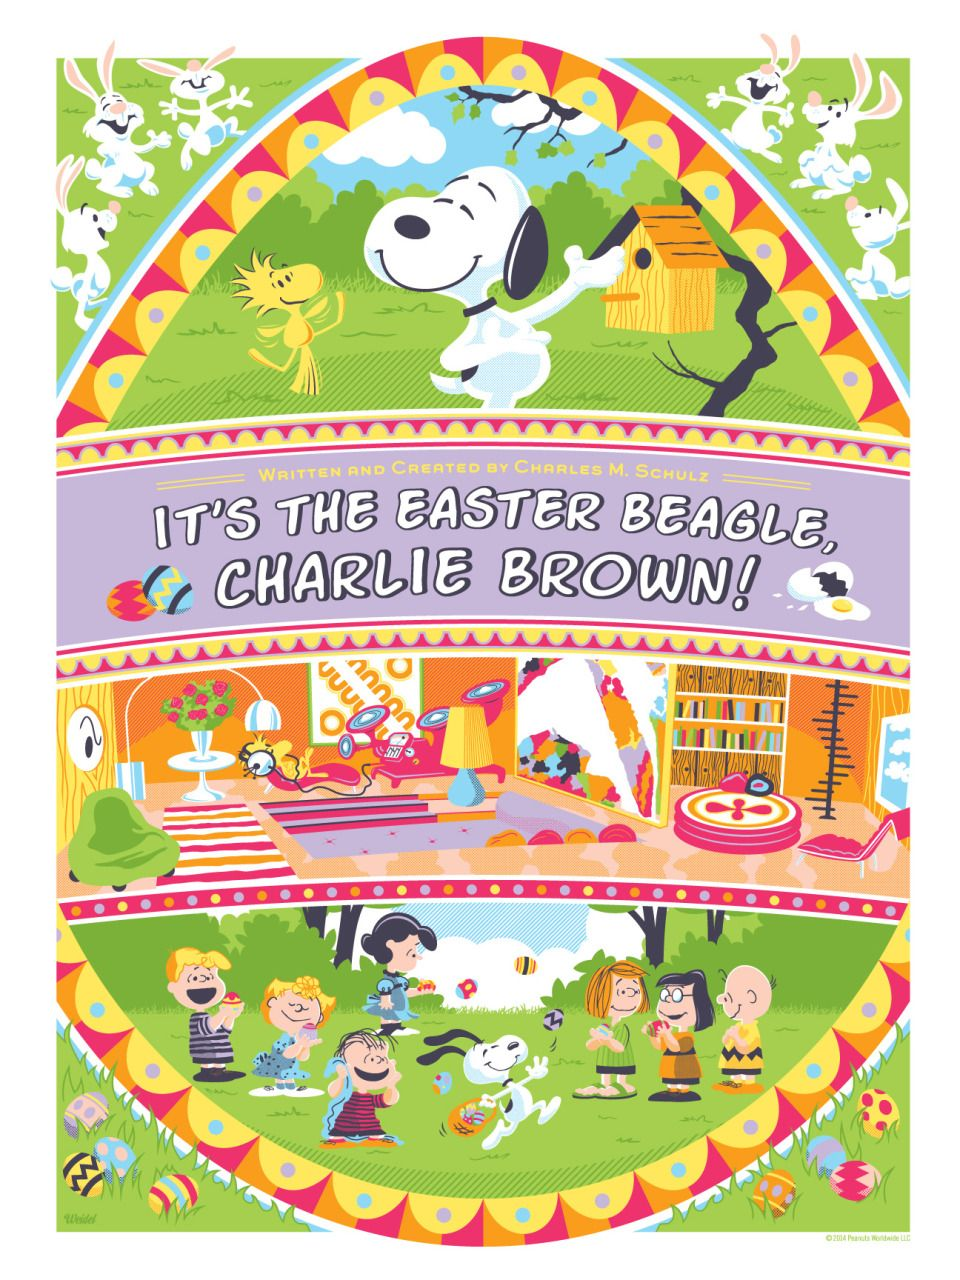 It's the Easter Beagle, Charlie Brown by Jayson Weidel